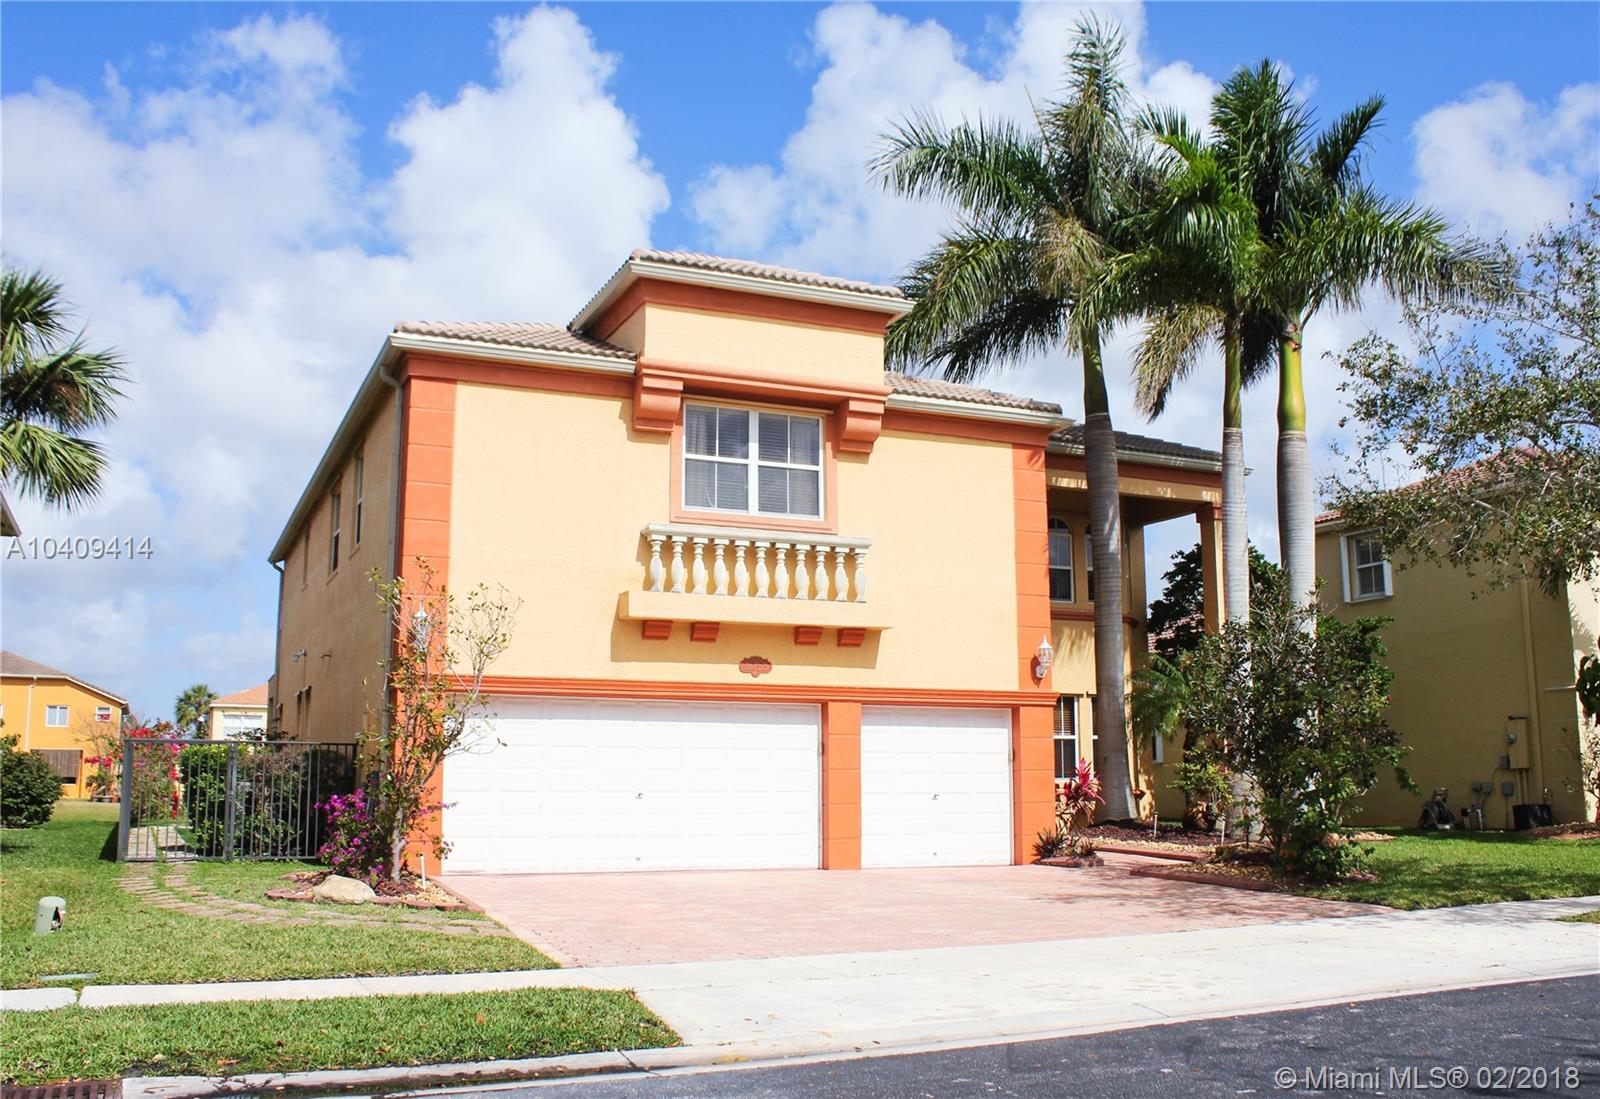 16753 Sw 12th St, Pembroke Pines FL, 33027